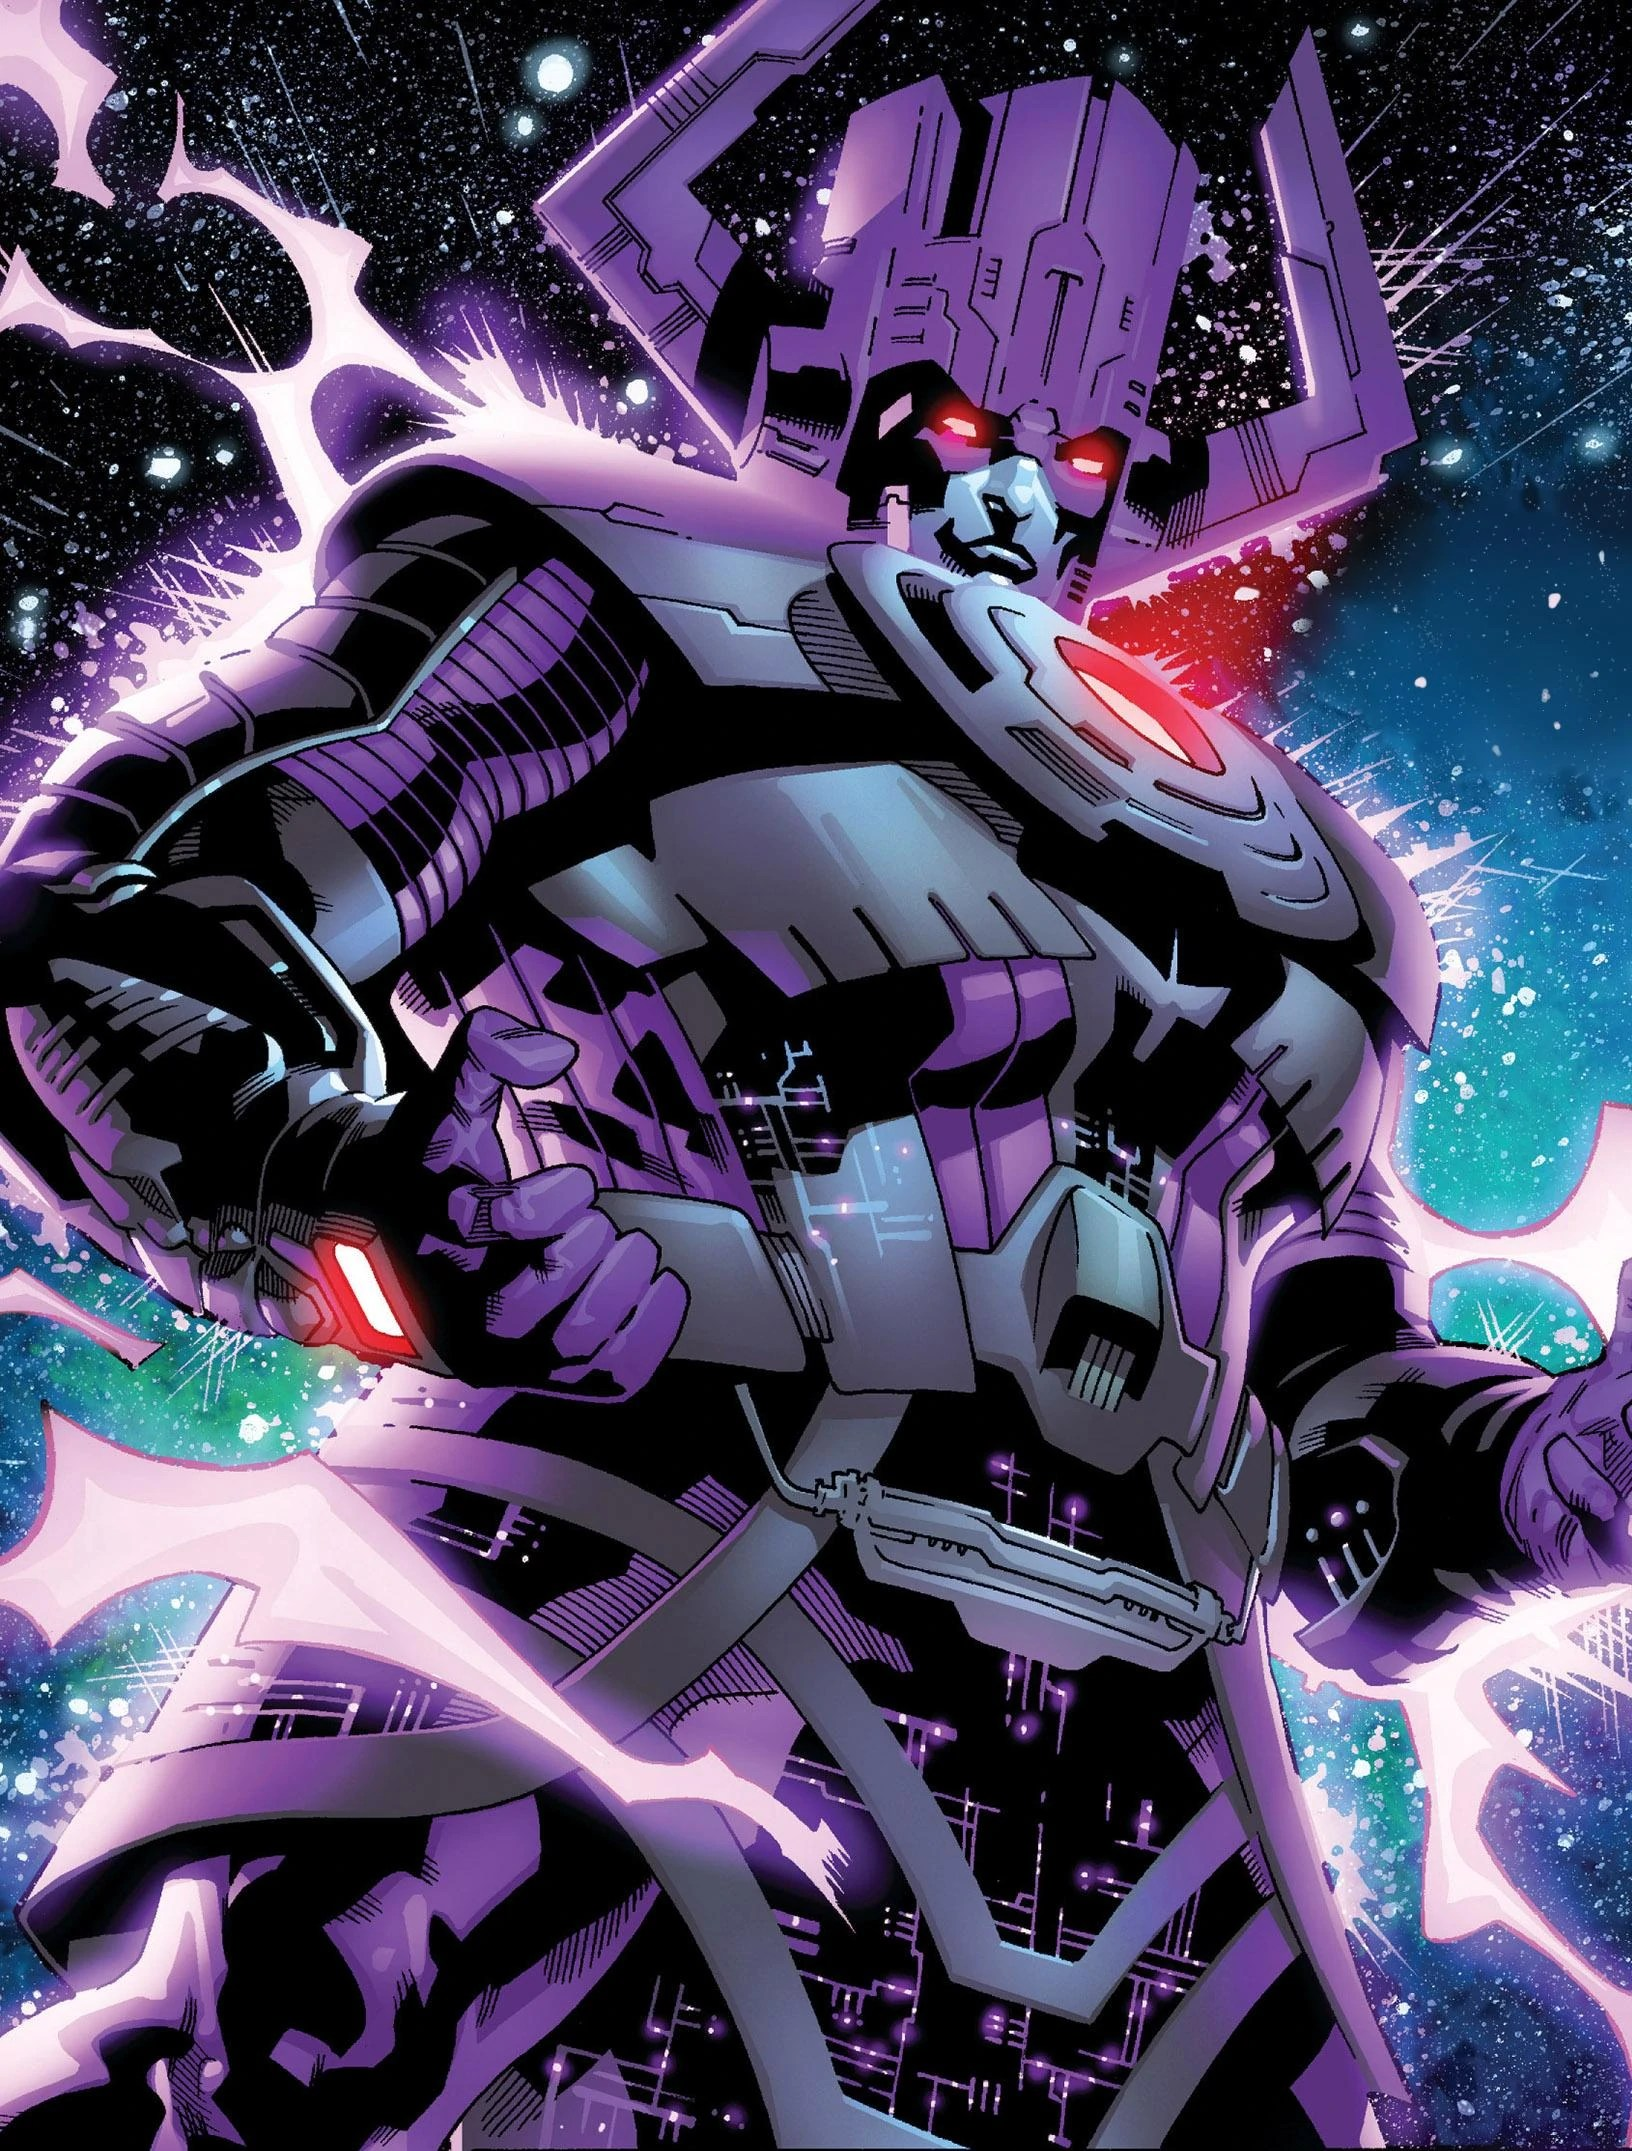 Galactus (Earth-616) | Spider-Man Wiki | FANDOM powered by Wikia